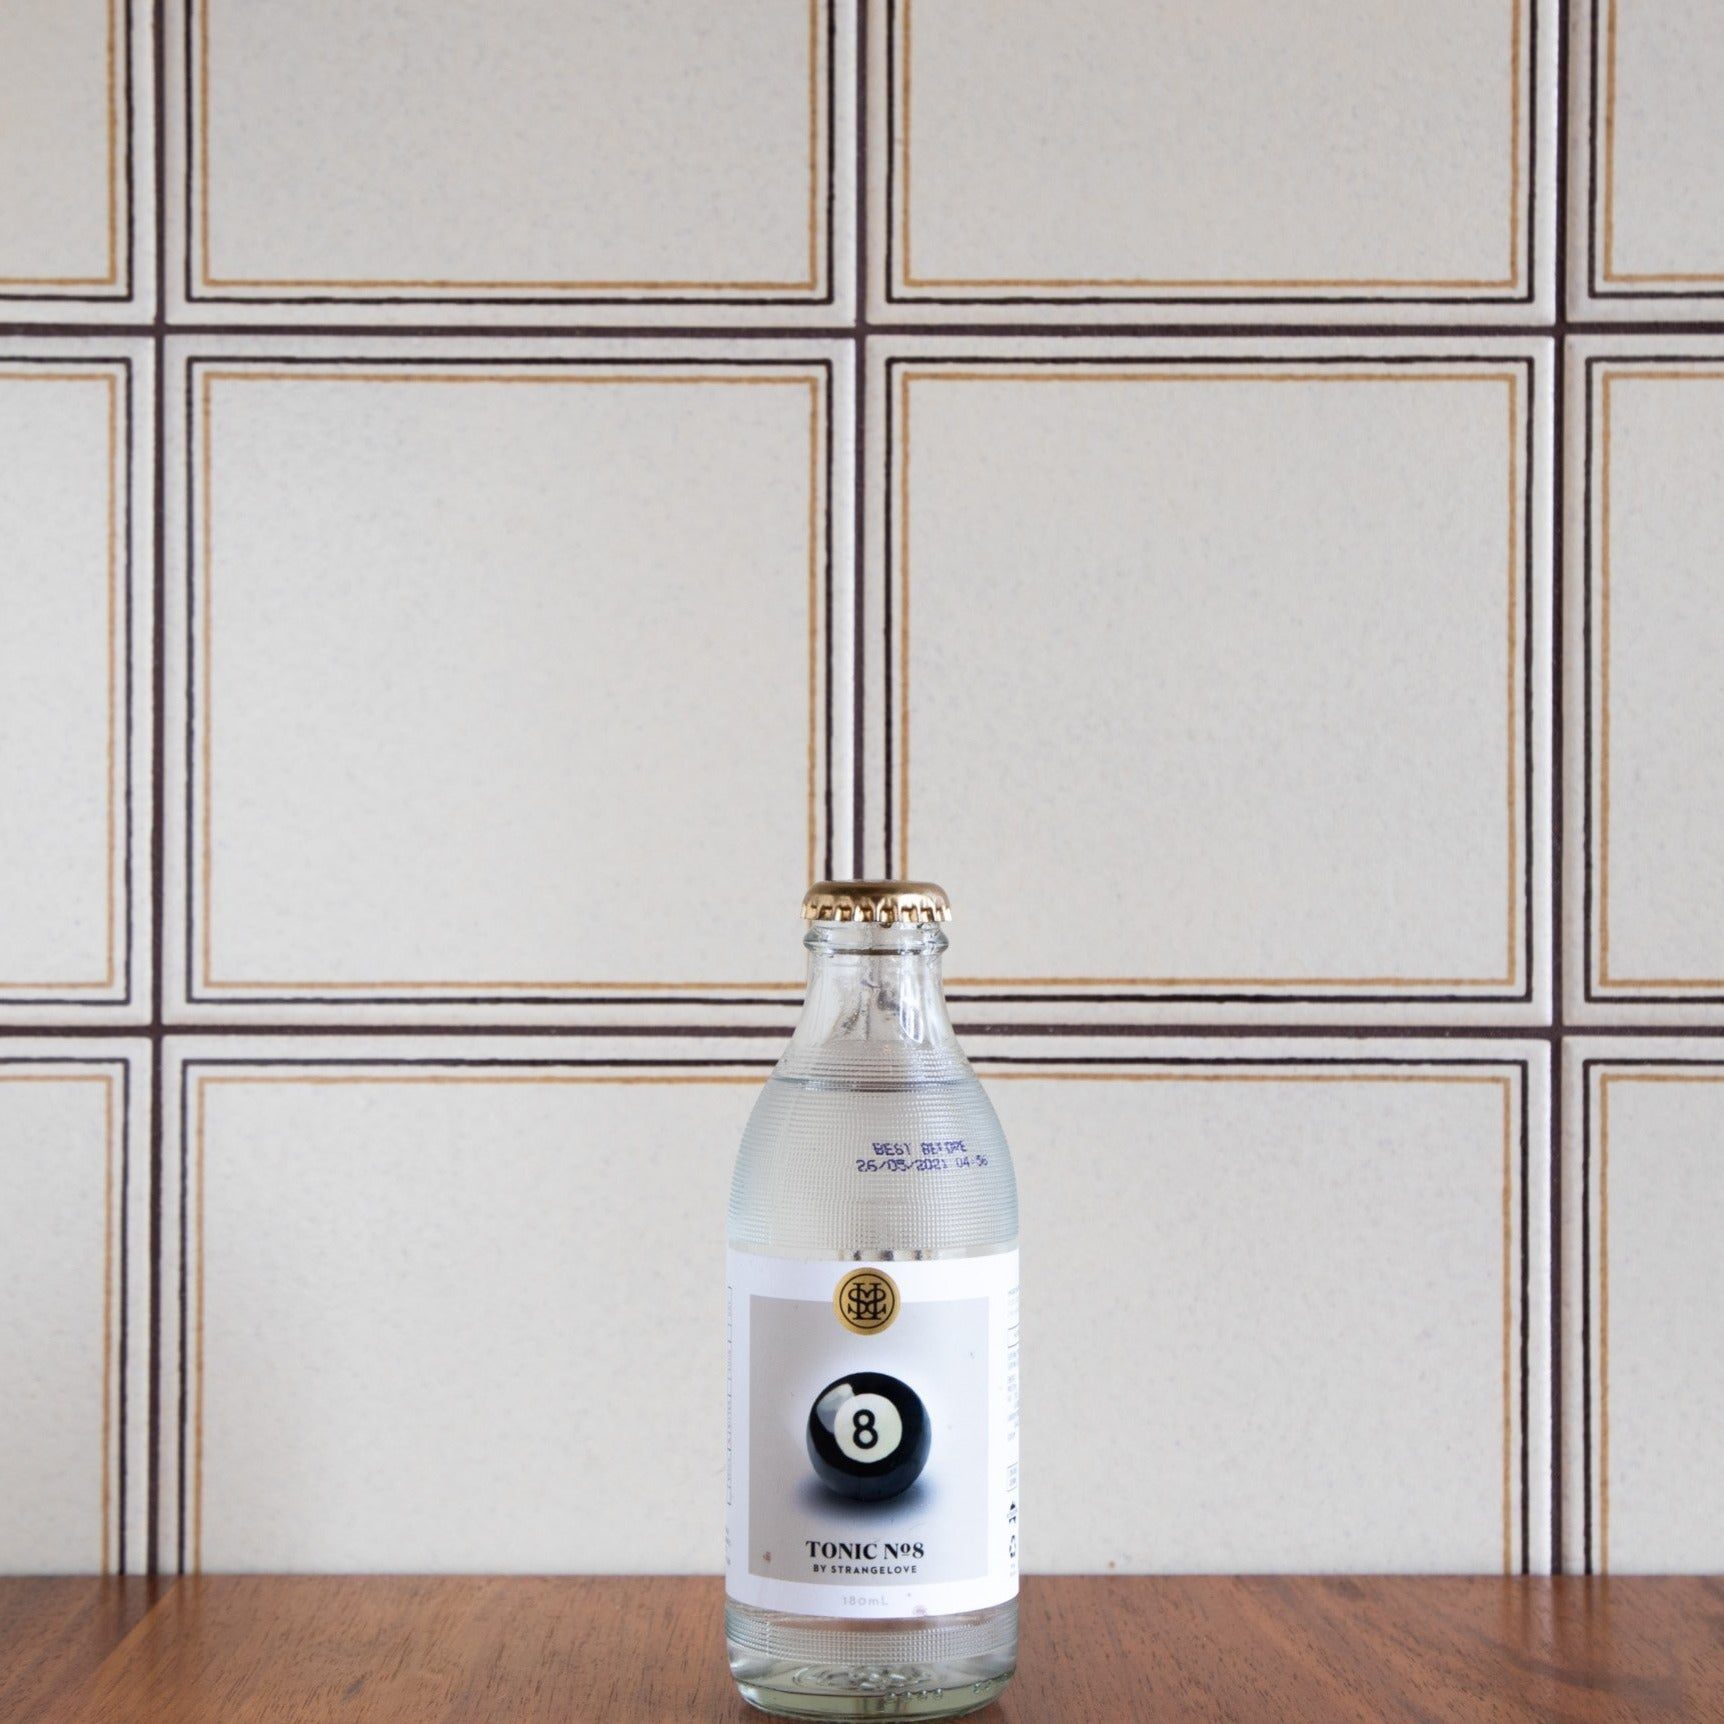 Strange Love No 8 Tonic Water